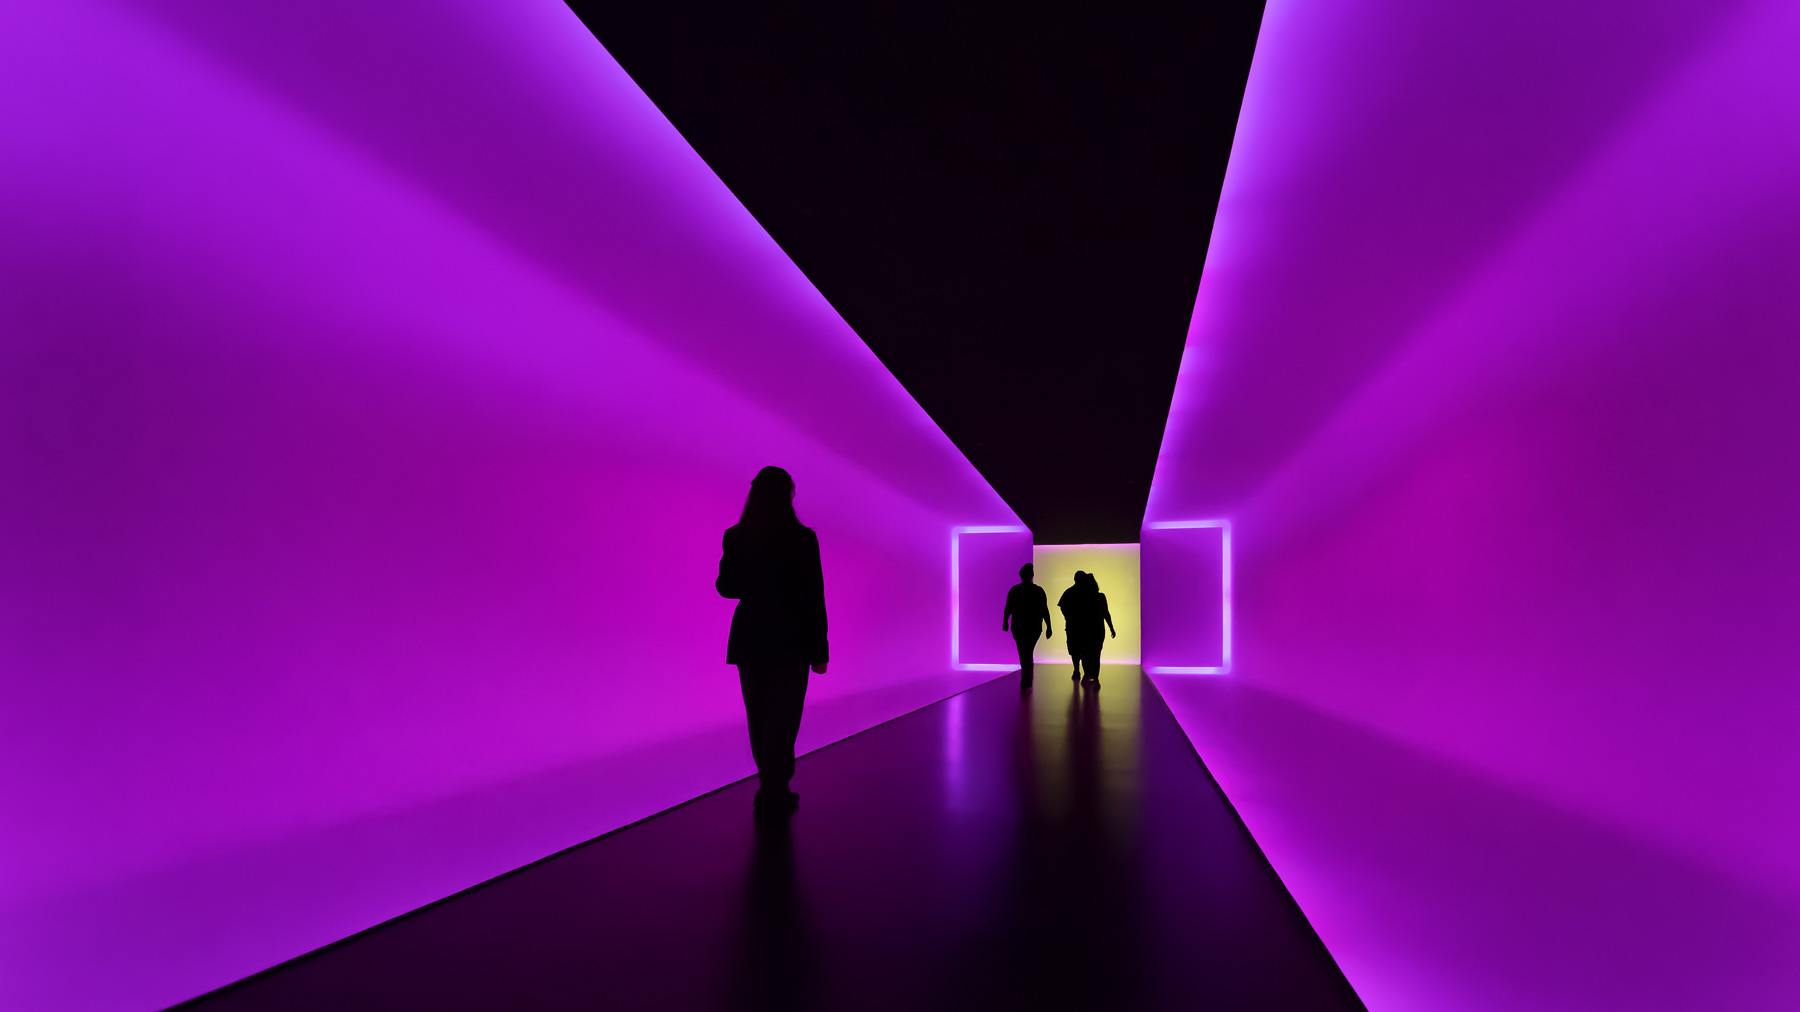 Into-The-Heart-I-The-Light-Inside-James-Turrell-Mabry-Campbell-LR.jpg